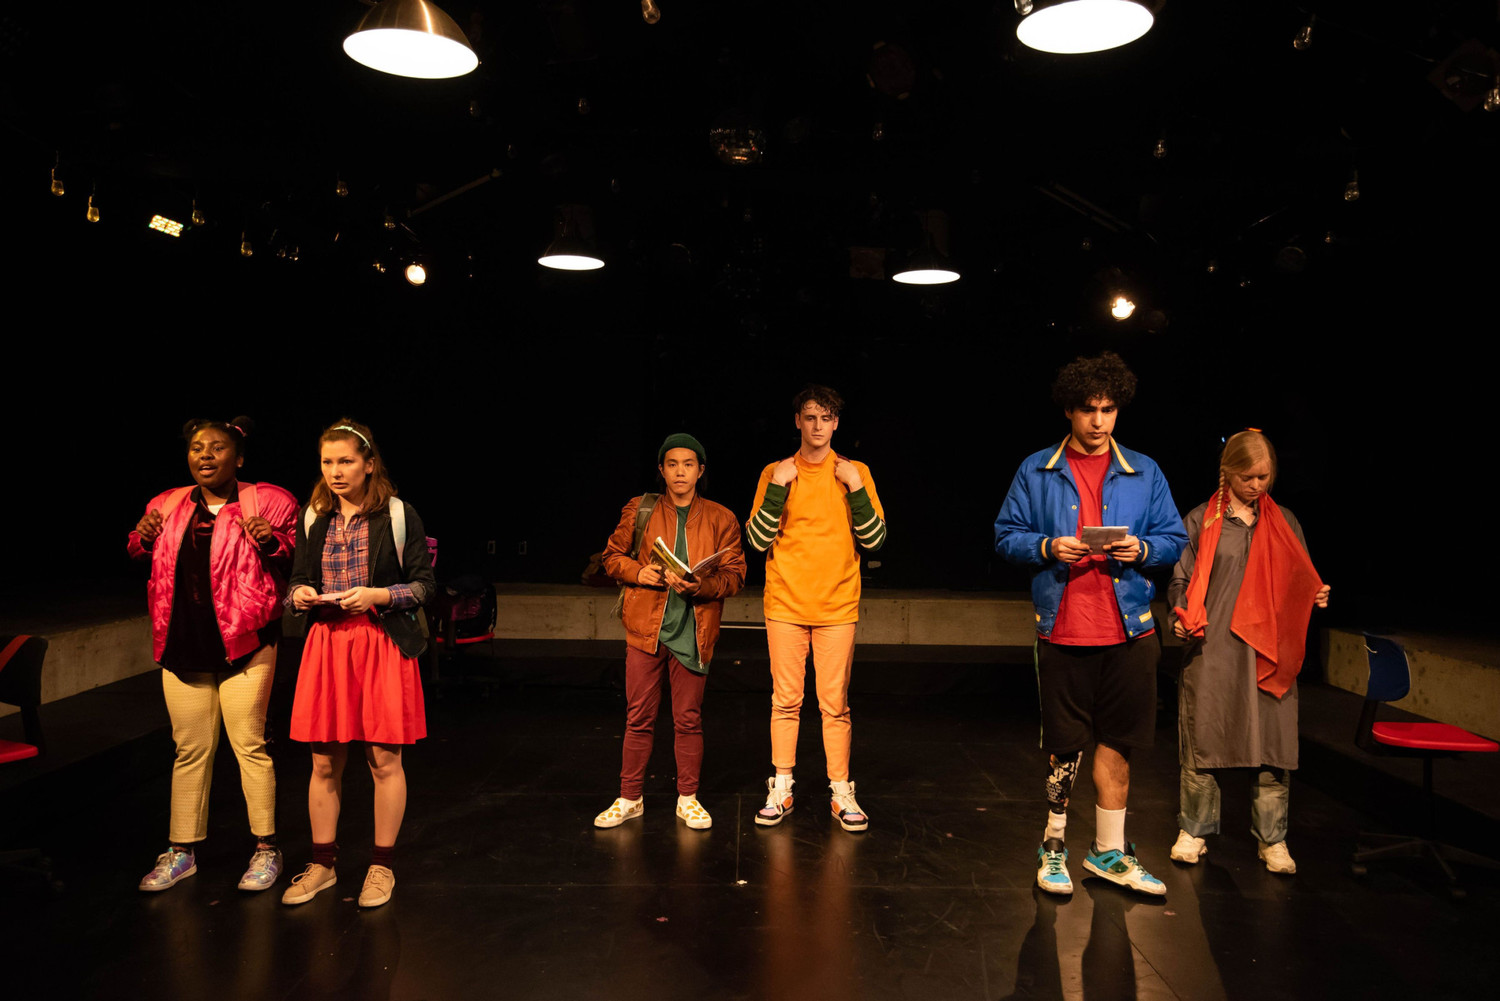 BWW Review: ERASER Drops Audiences Into the Chaos and Confusion of Elementary School